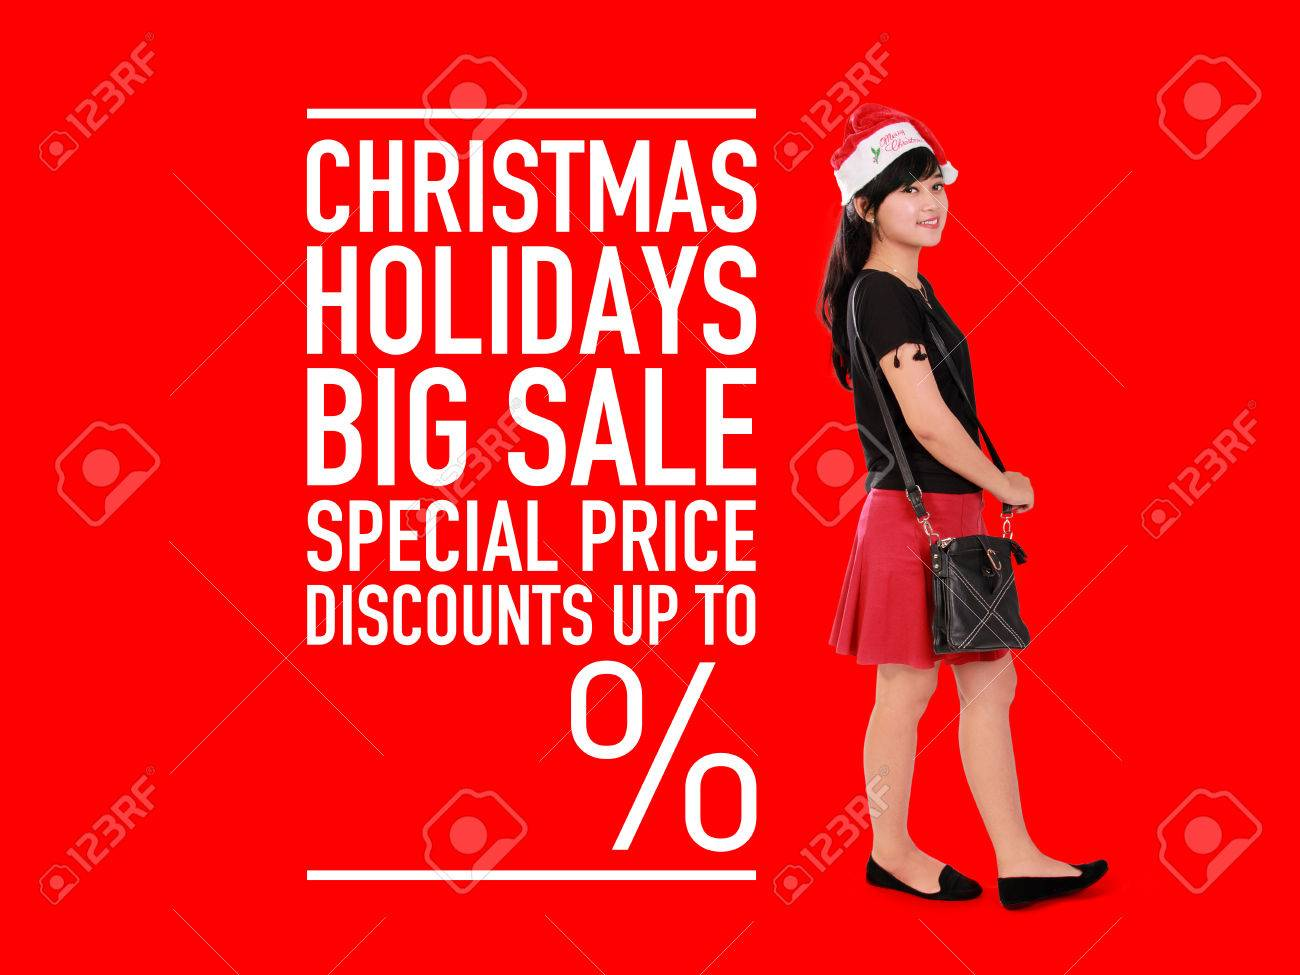 Christmas Images Free For Commercial Use.Christmas Holidays Big Sale Design For Commercial Use With Empty